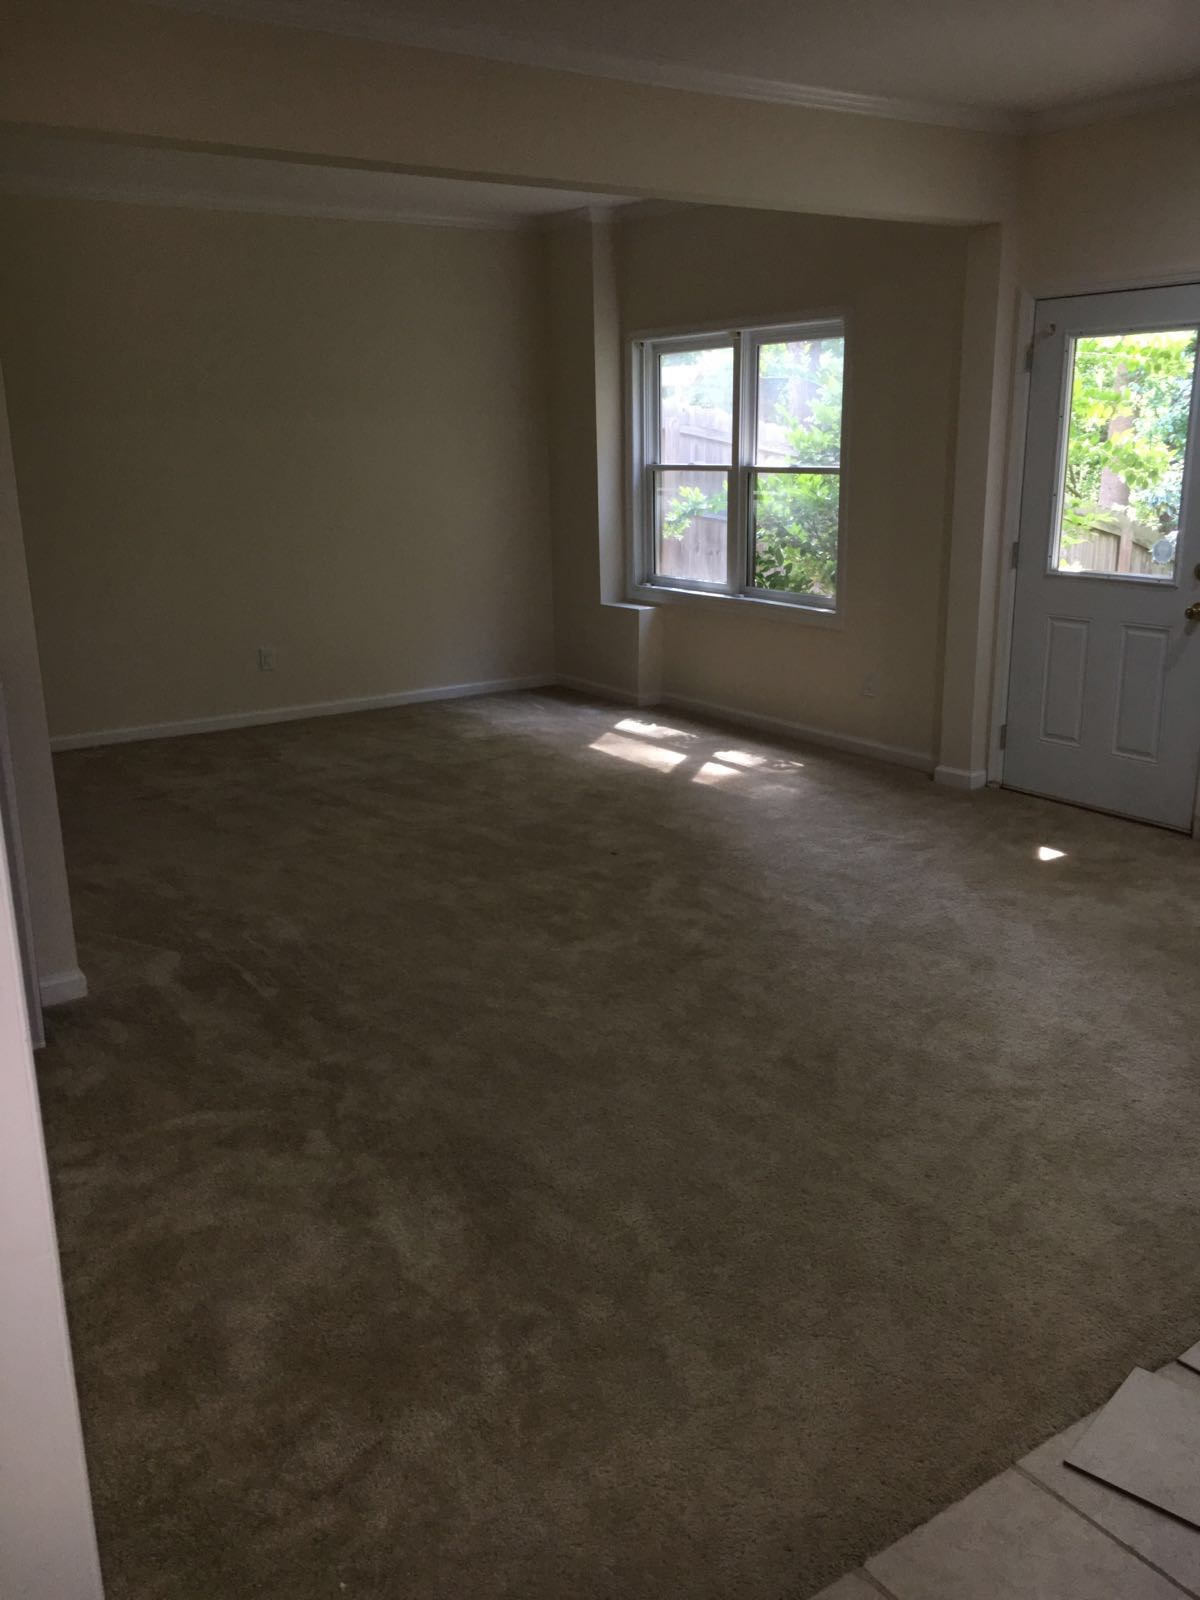 Basement For Rent!! Includes 1 Room, Living Room, Full